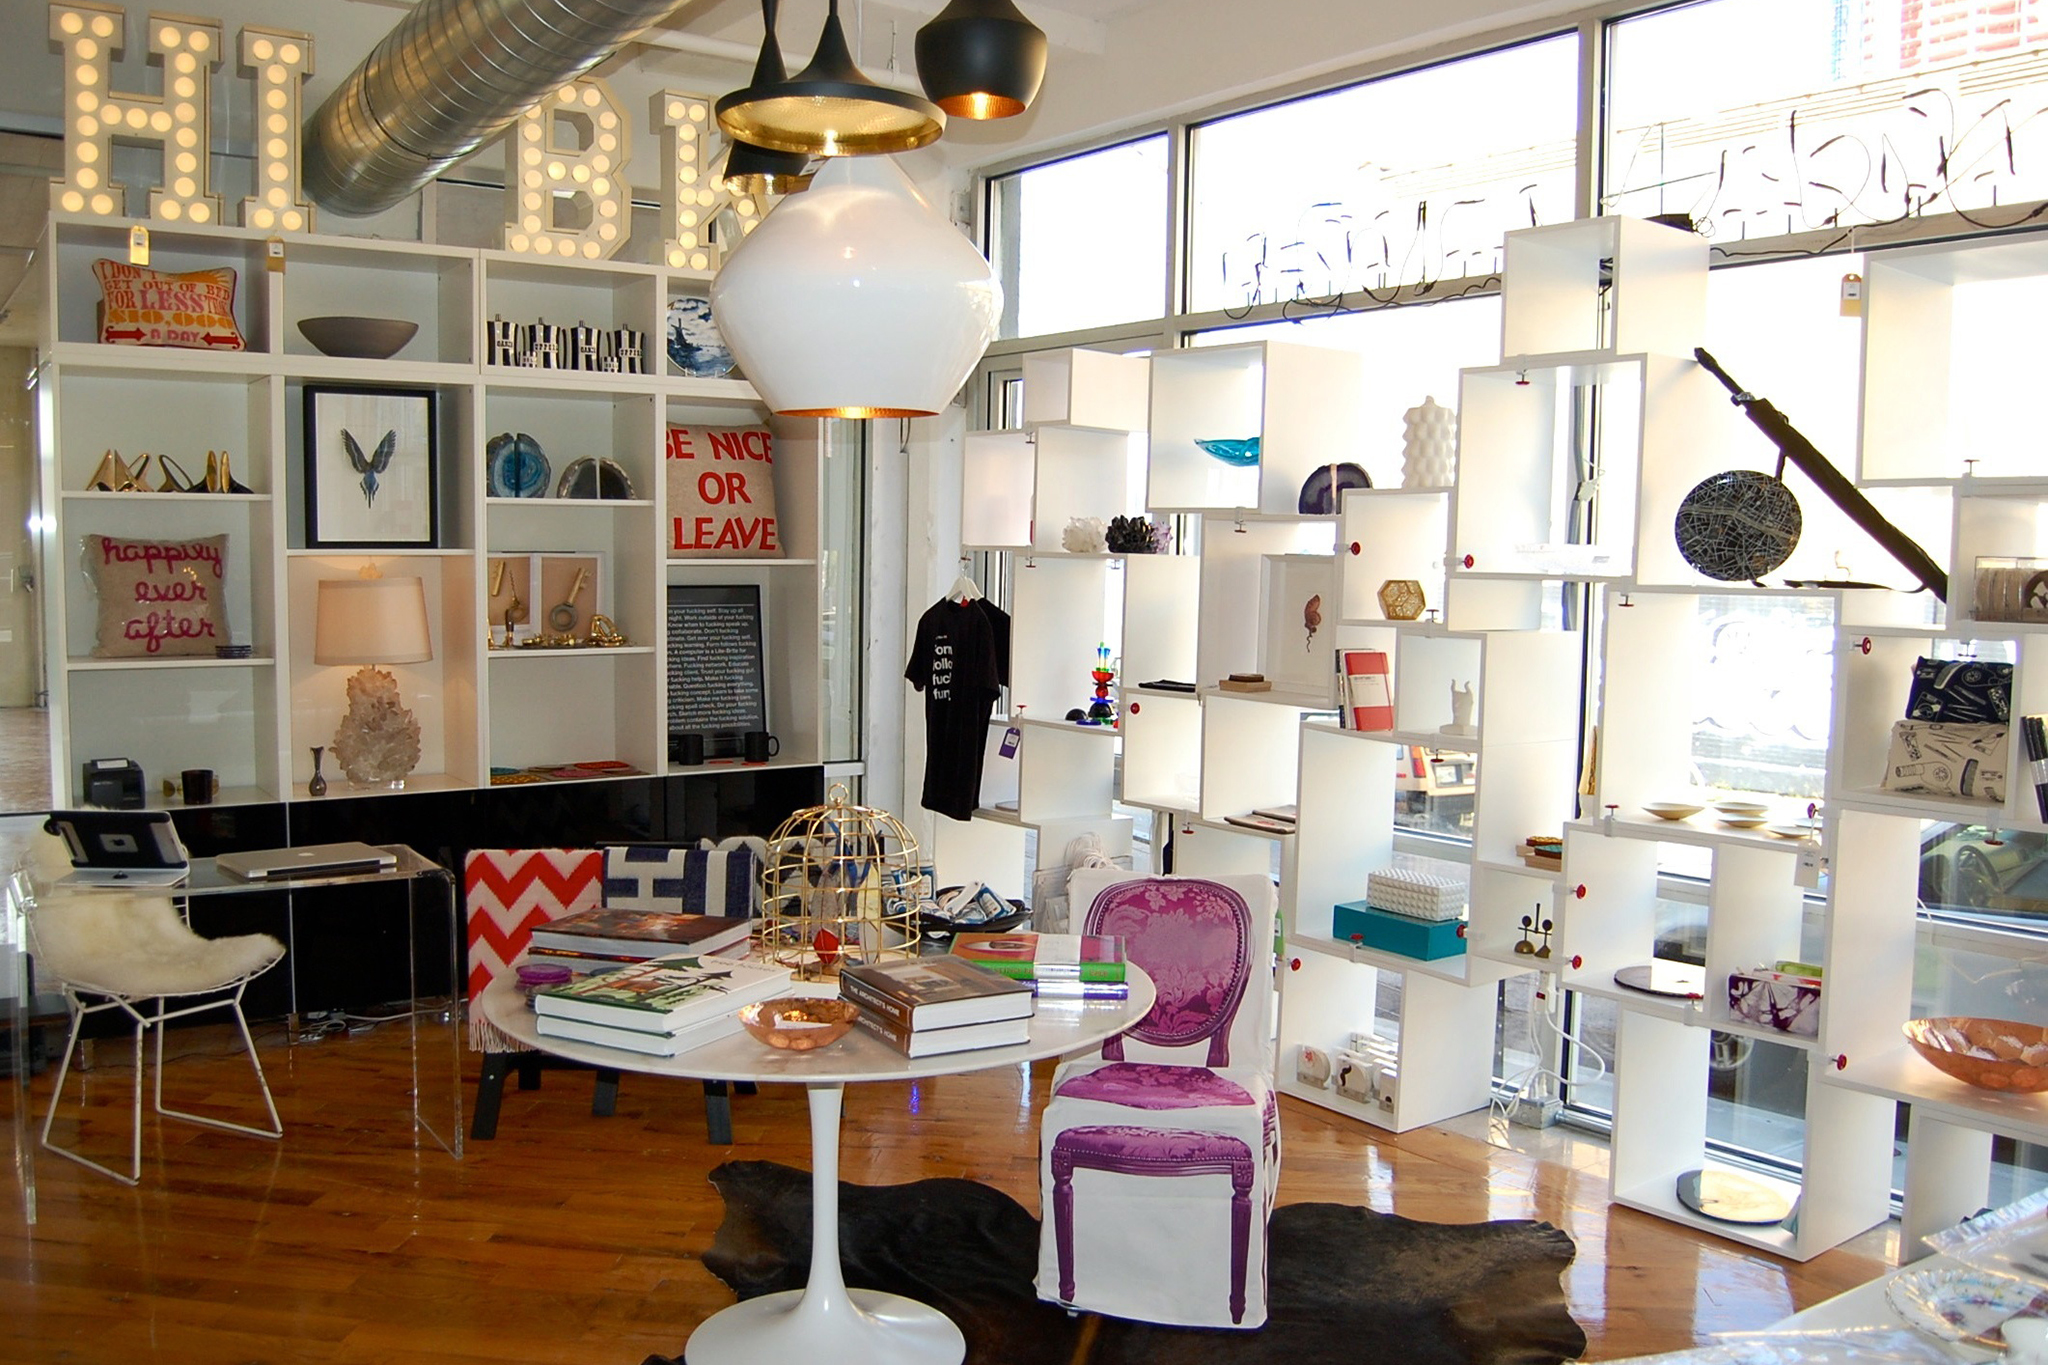 Home decor stores in NYC for decorating ideas and home furnishings Brick   Mortar